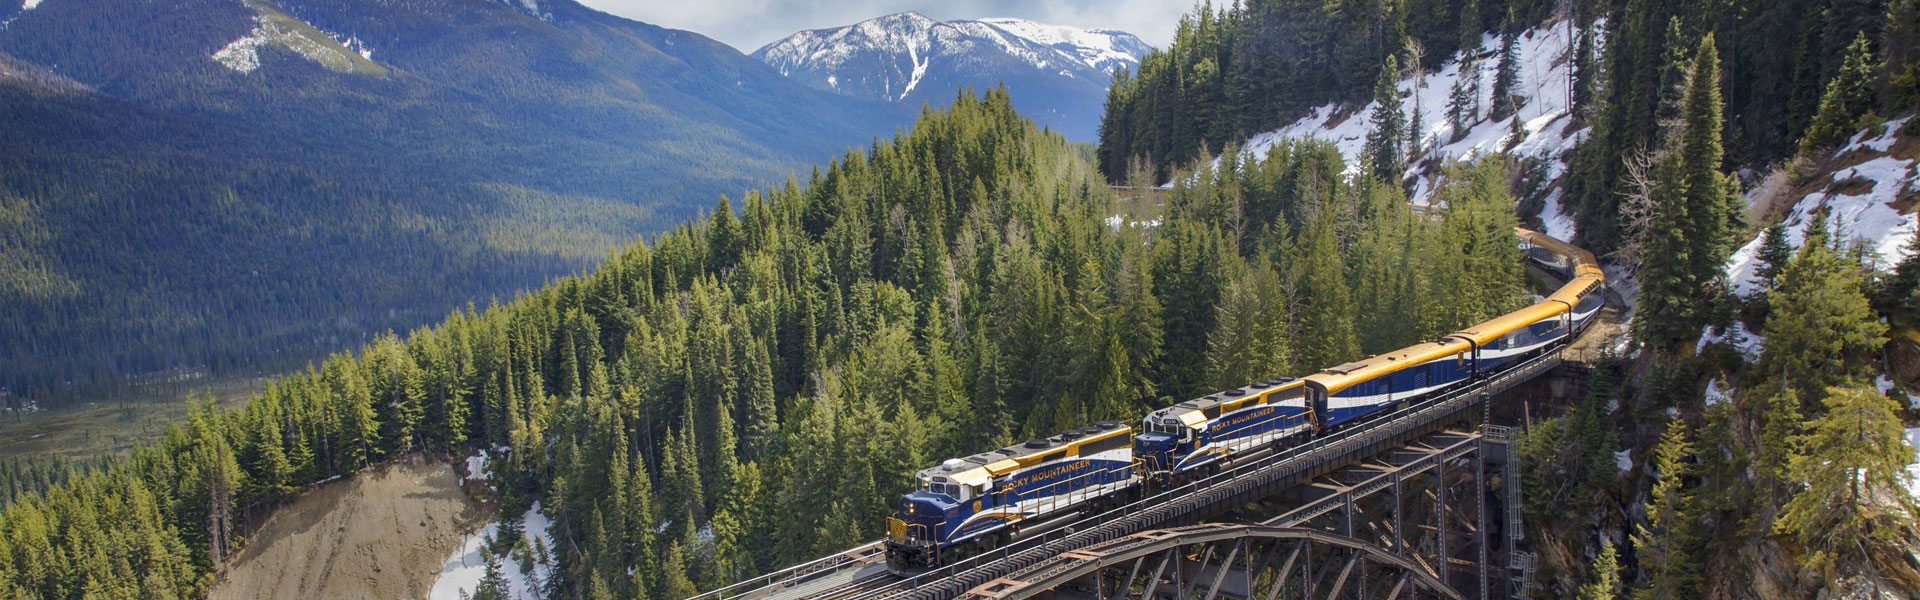 Canadian Rockies Train Trips | Rocky Mountaineer Train Banff